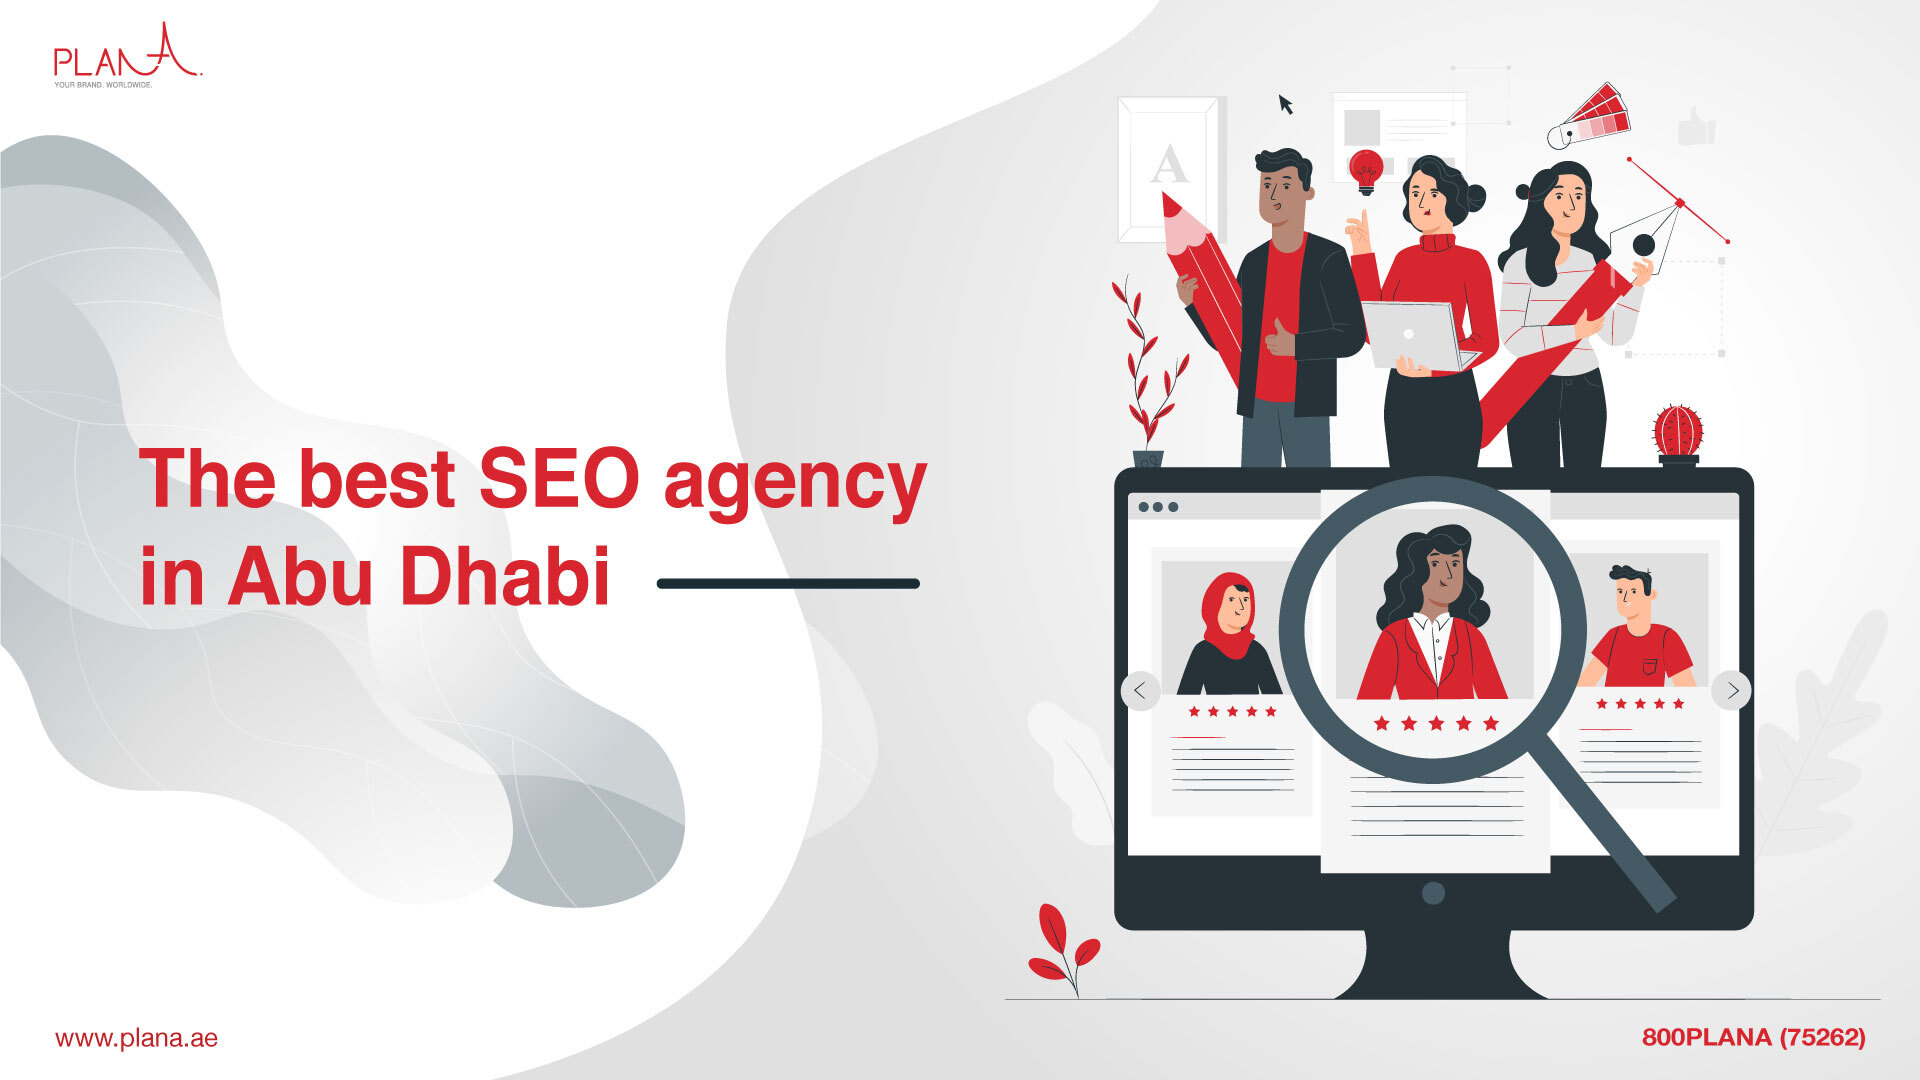 Which is the Best SEO Agency in Abu Dhabi?